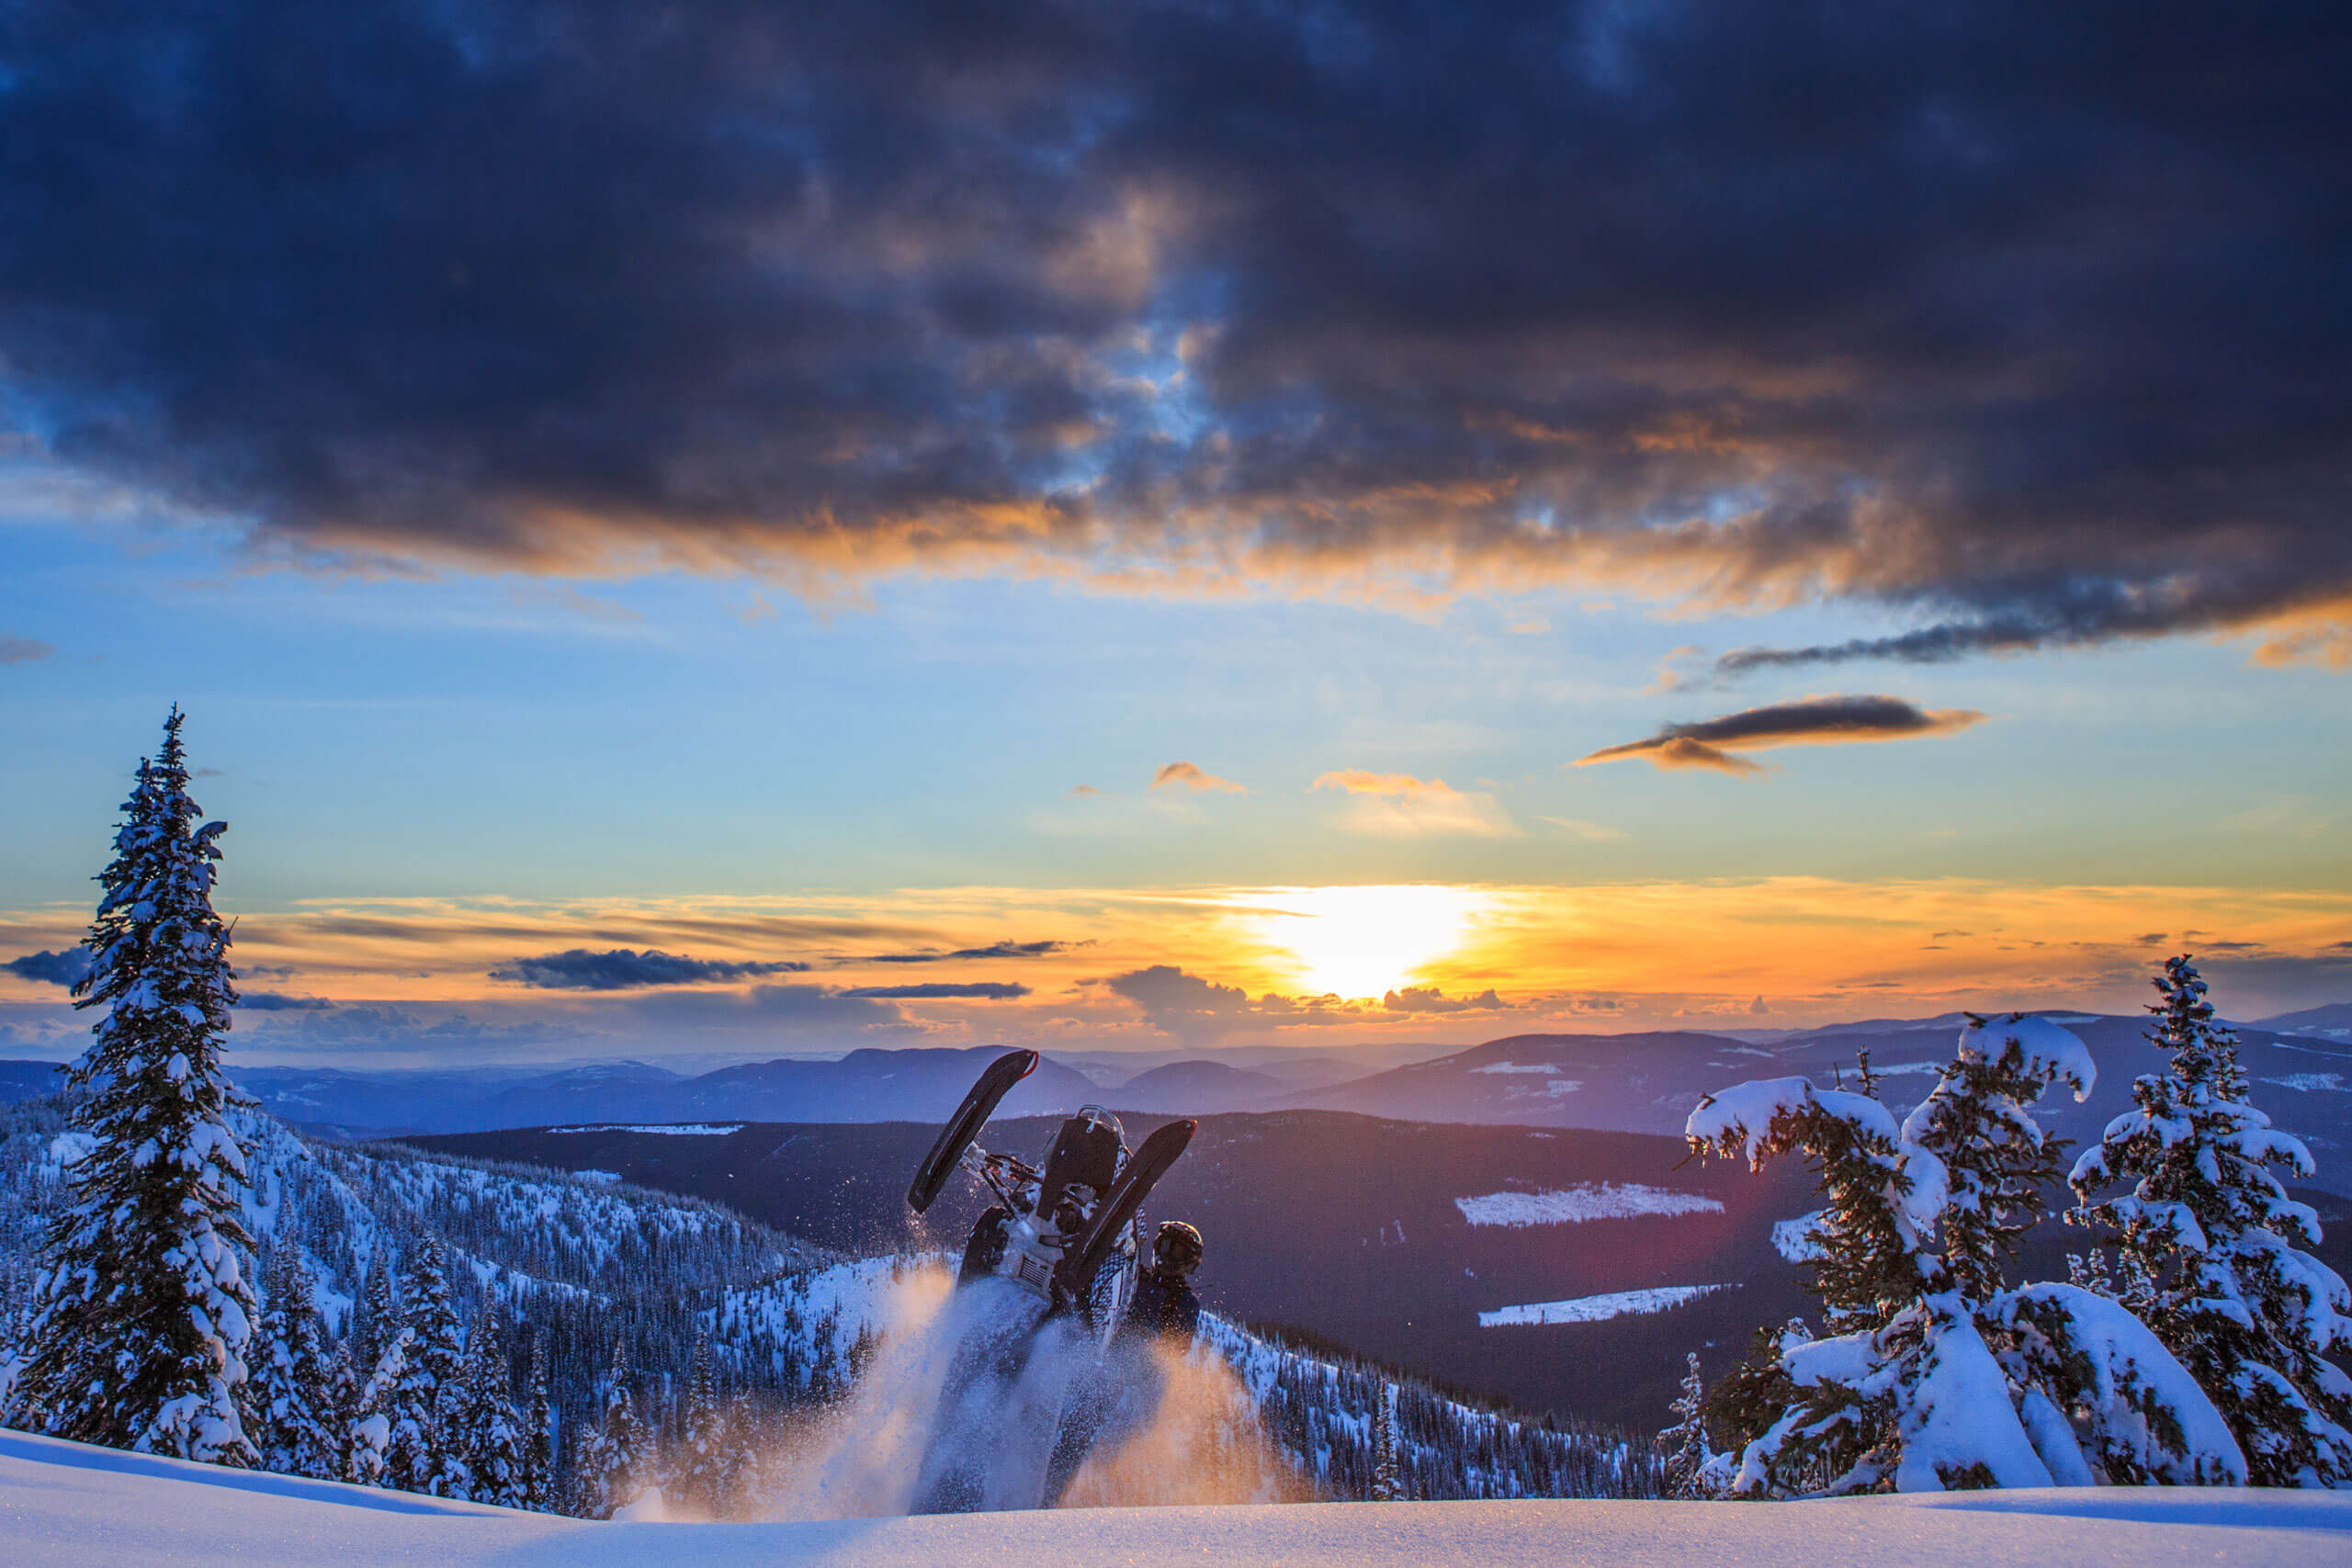 Sunset-snowmobiling-Grizzly-Lodge